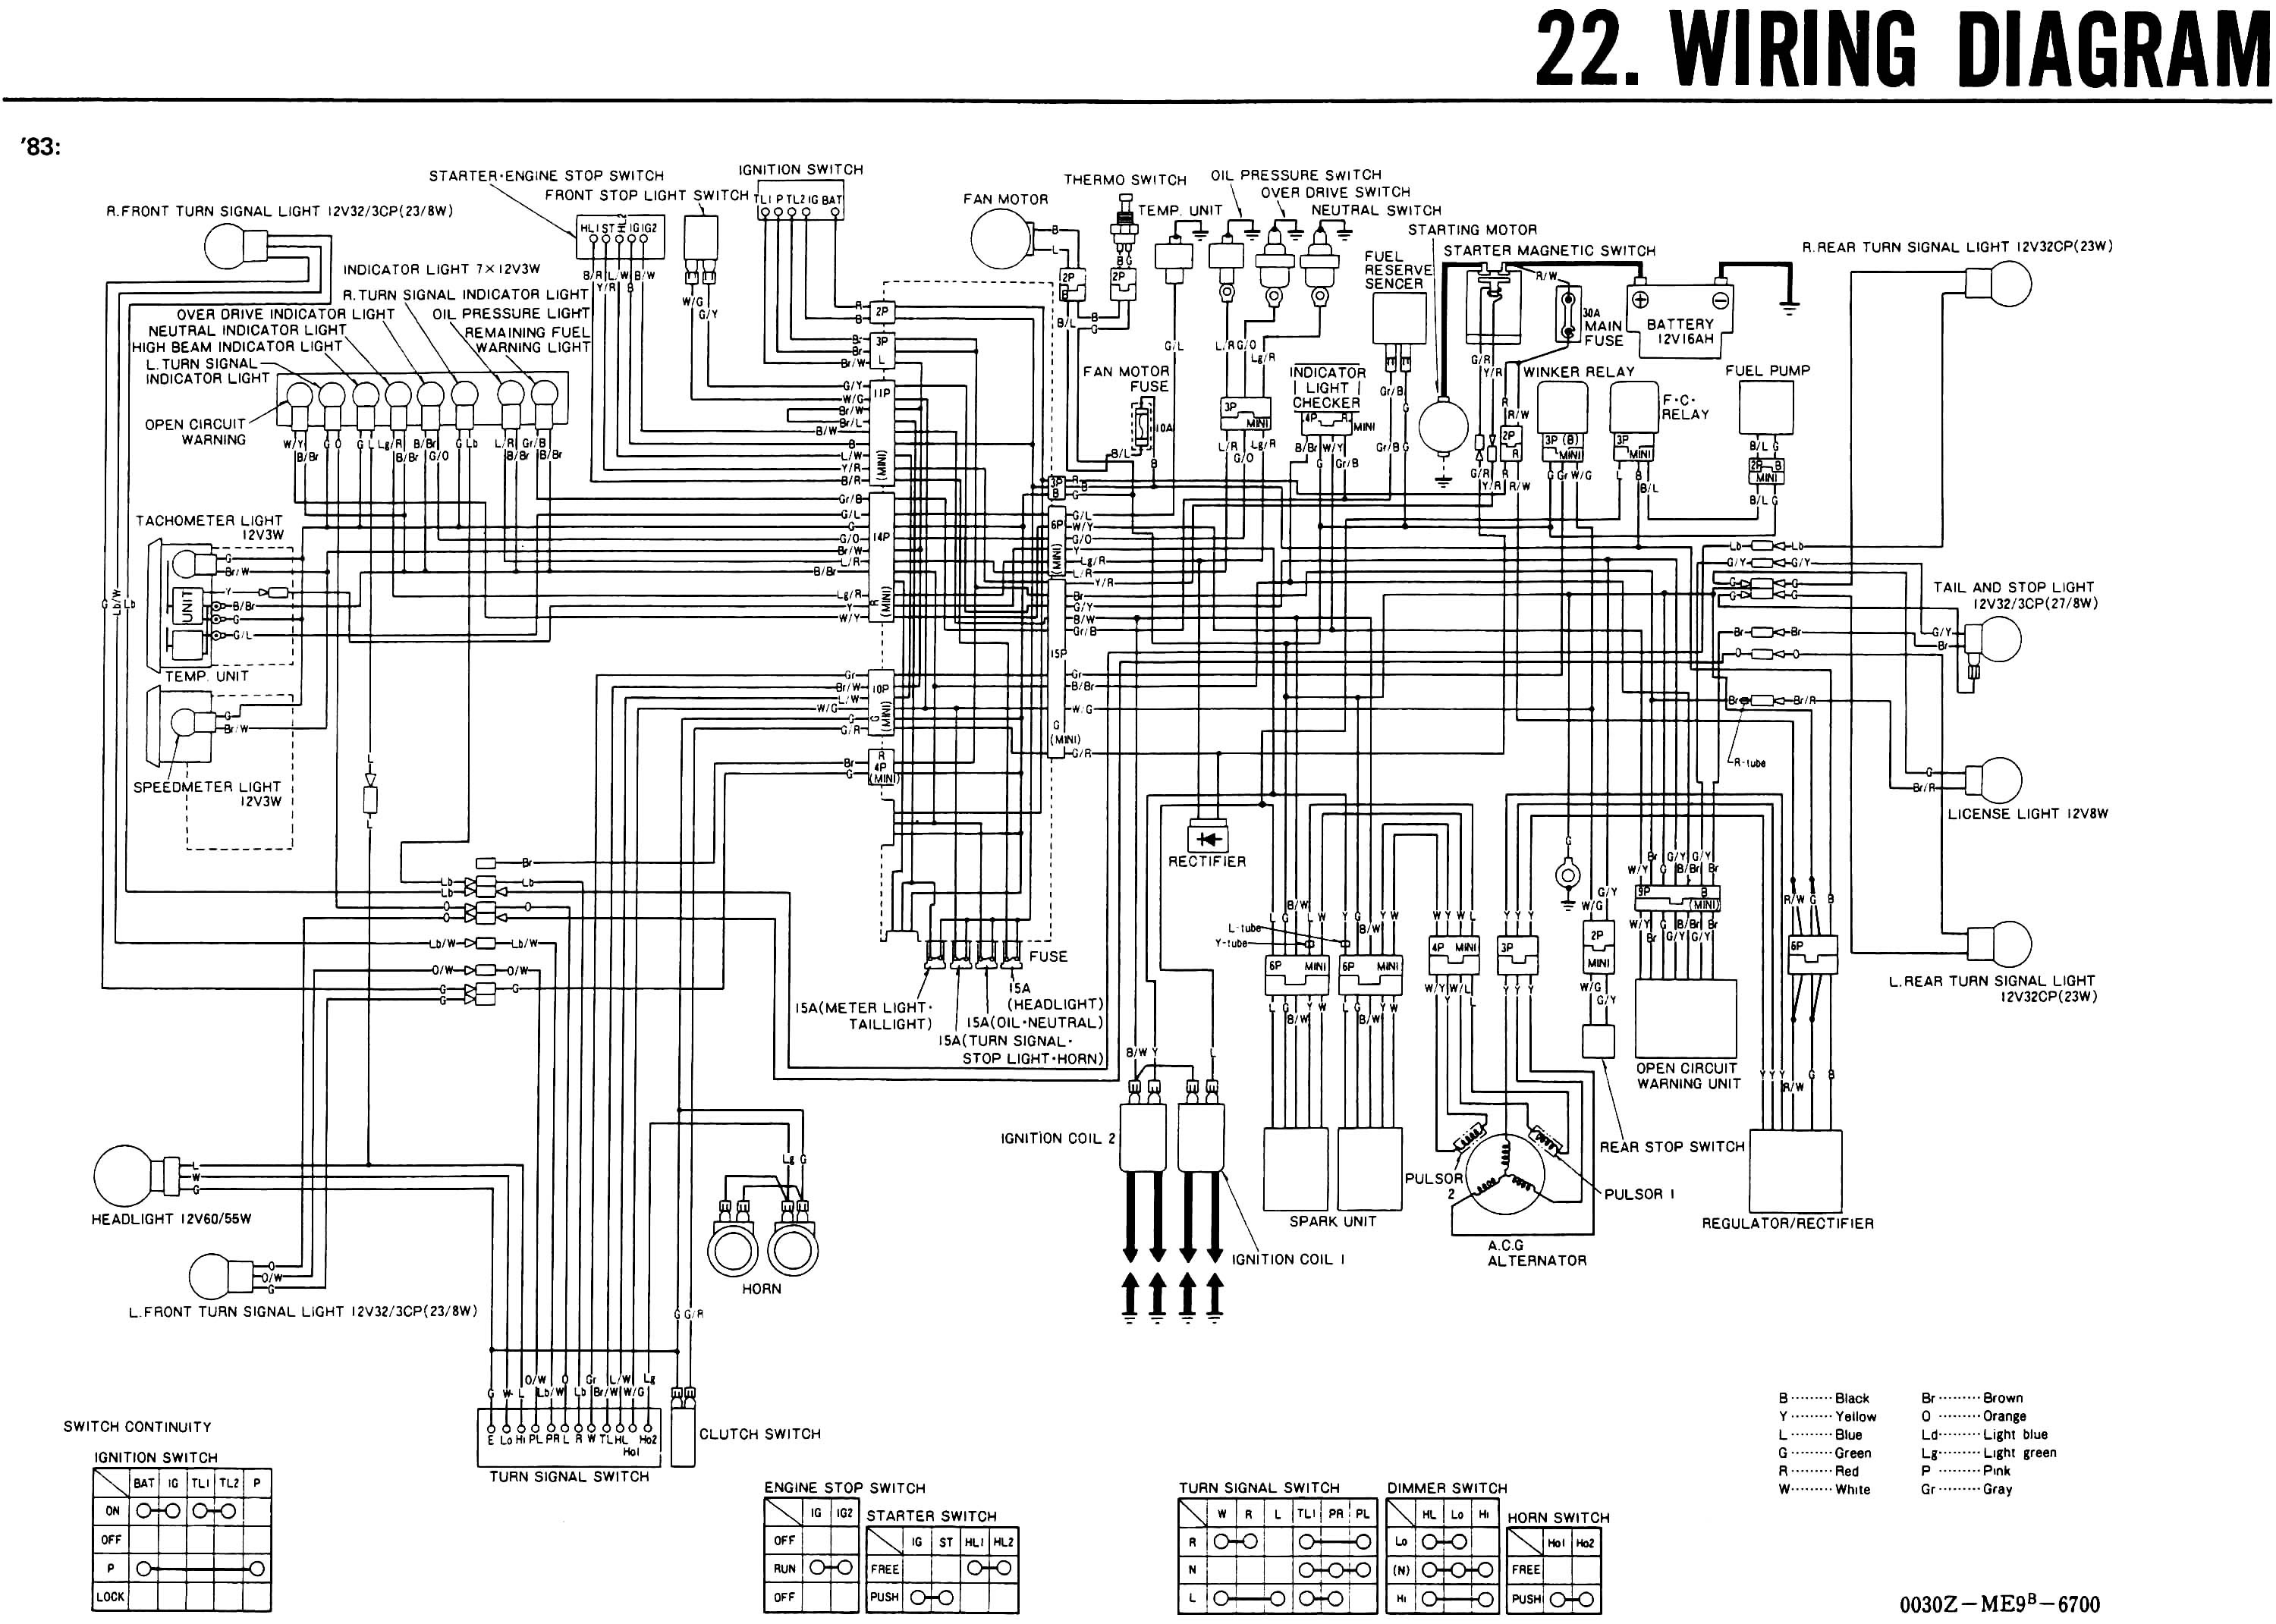 59_1250770672 wiring diagrams honda shadow 1100 2005 wiring diagram data